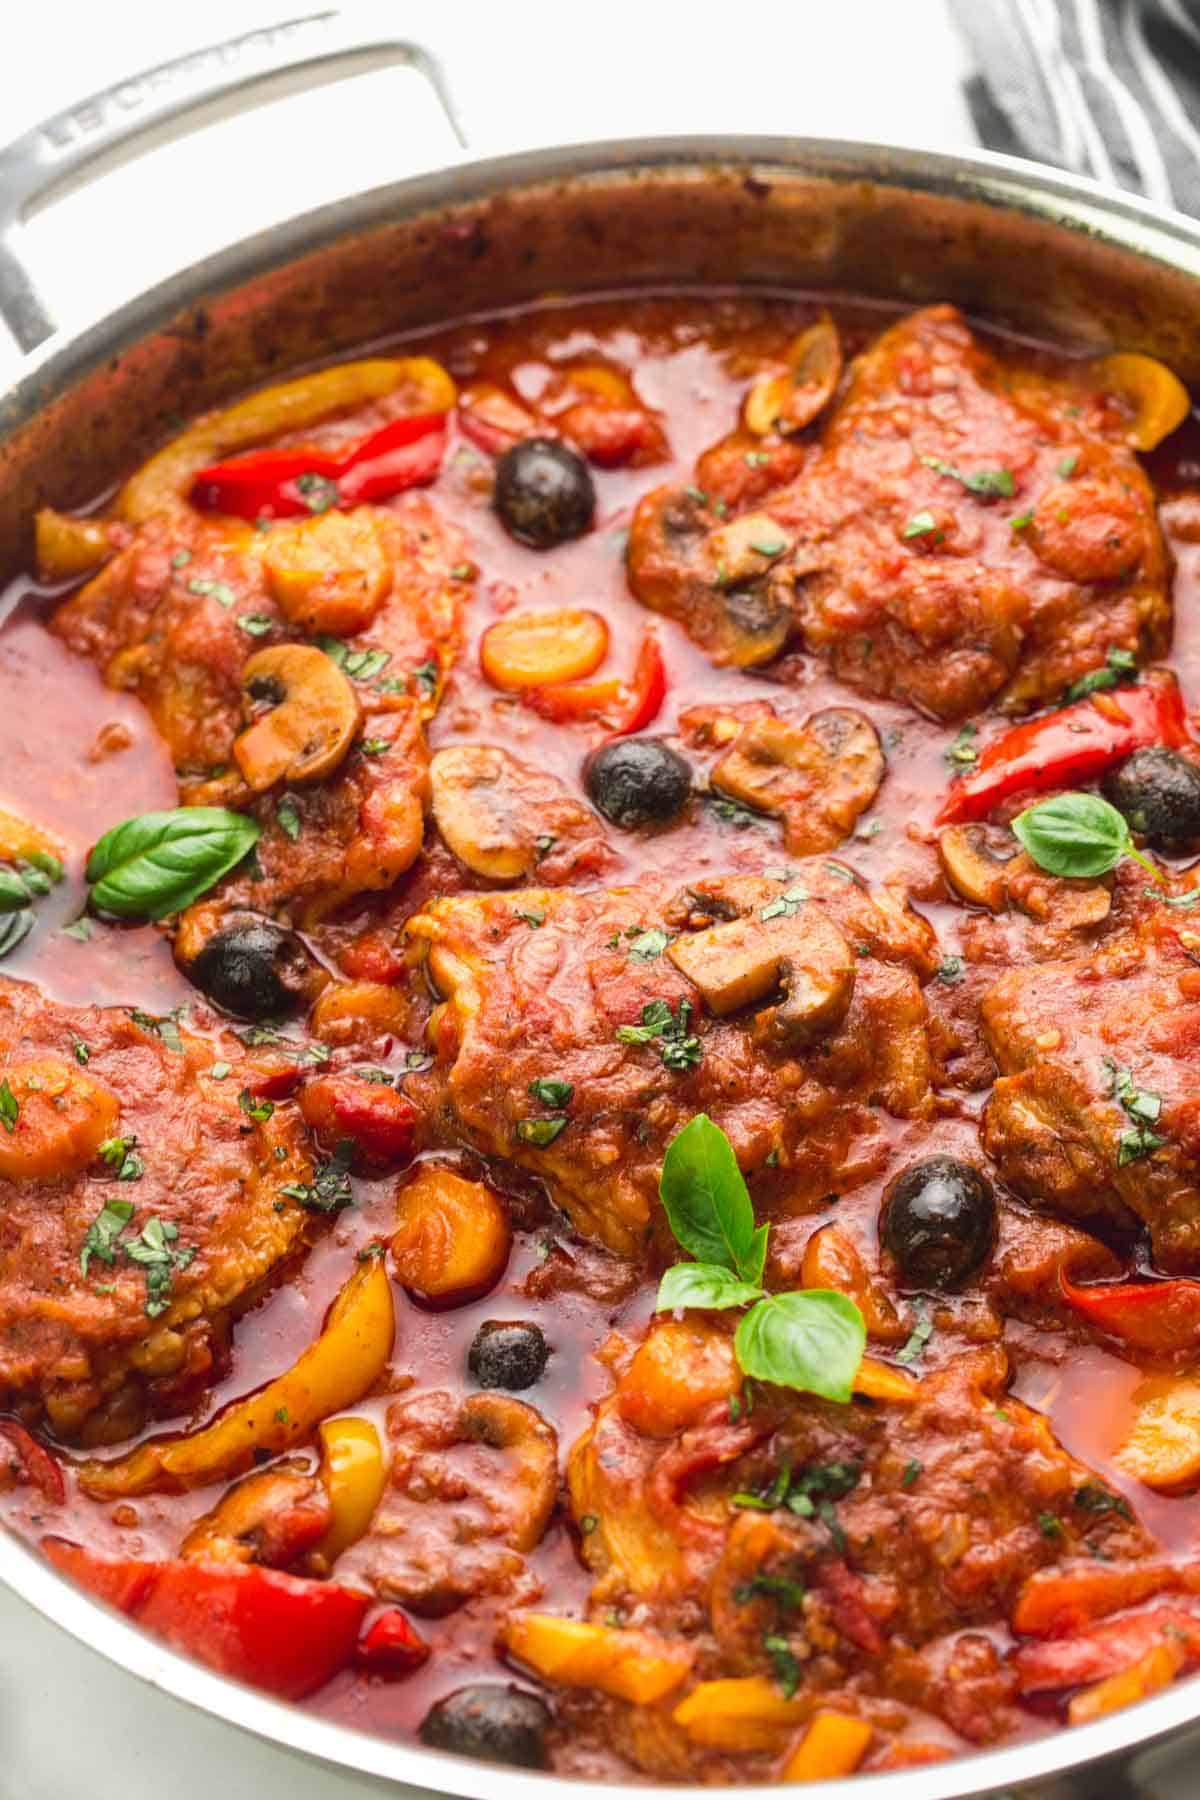 Chicken cacciatore in a skillet, garnished with fresh basil leaves